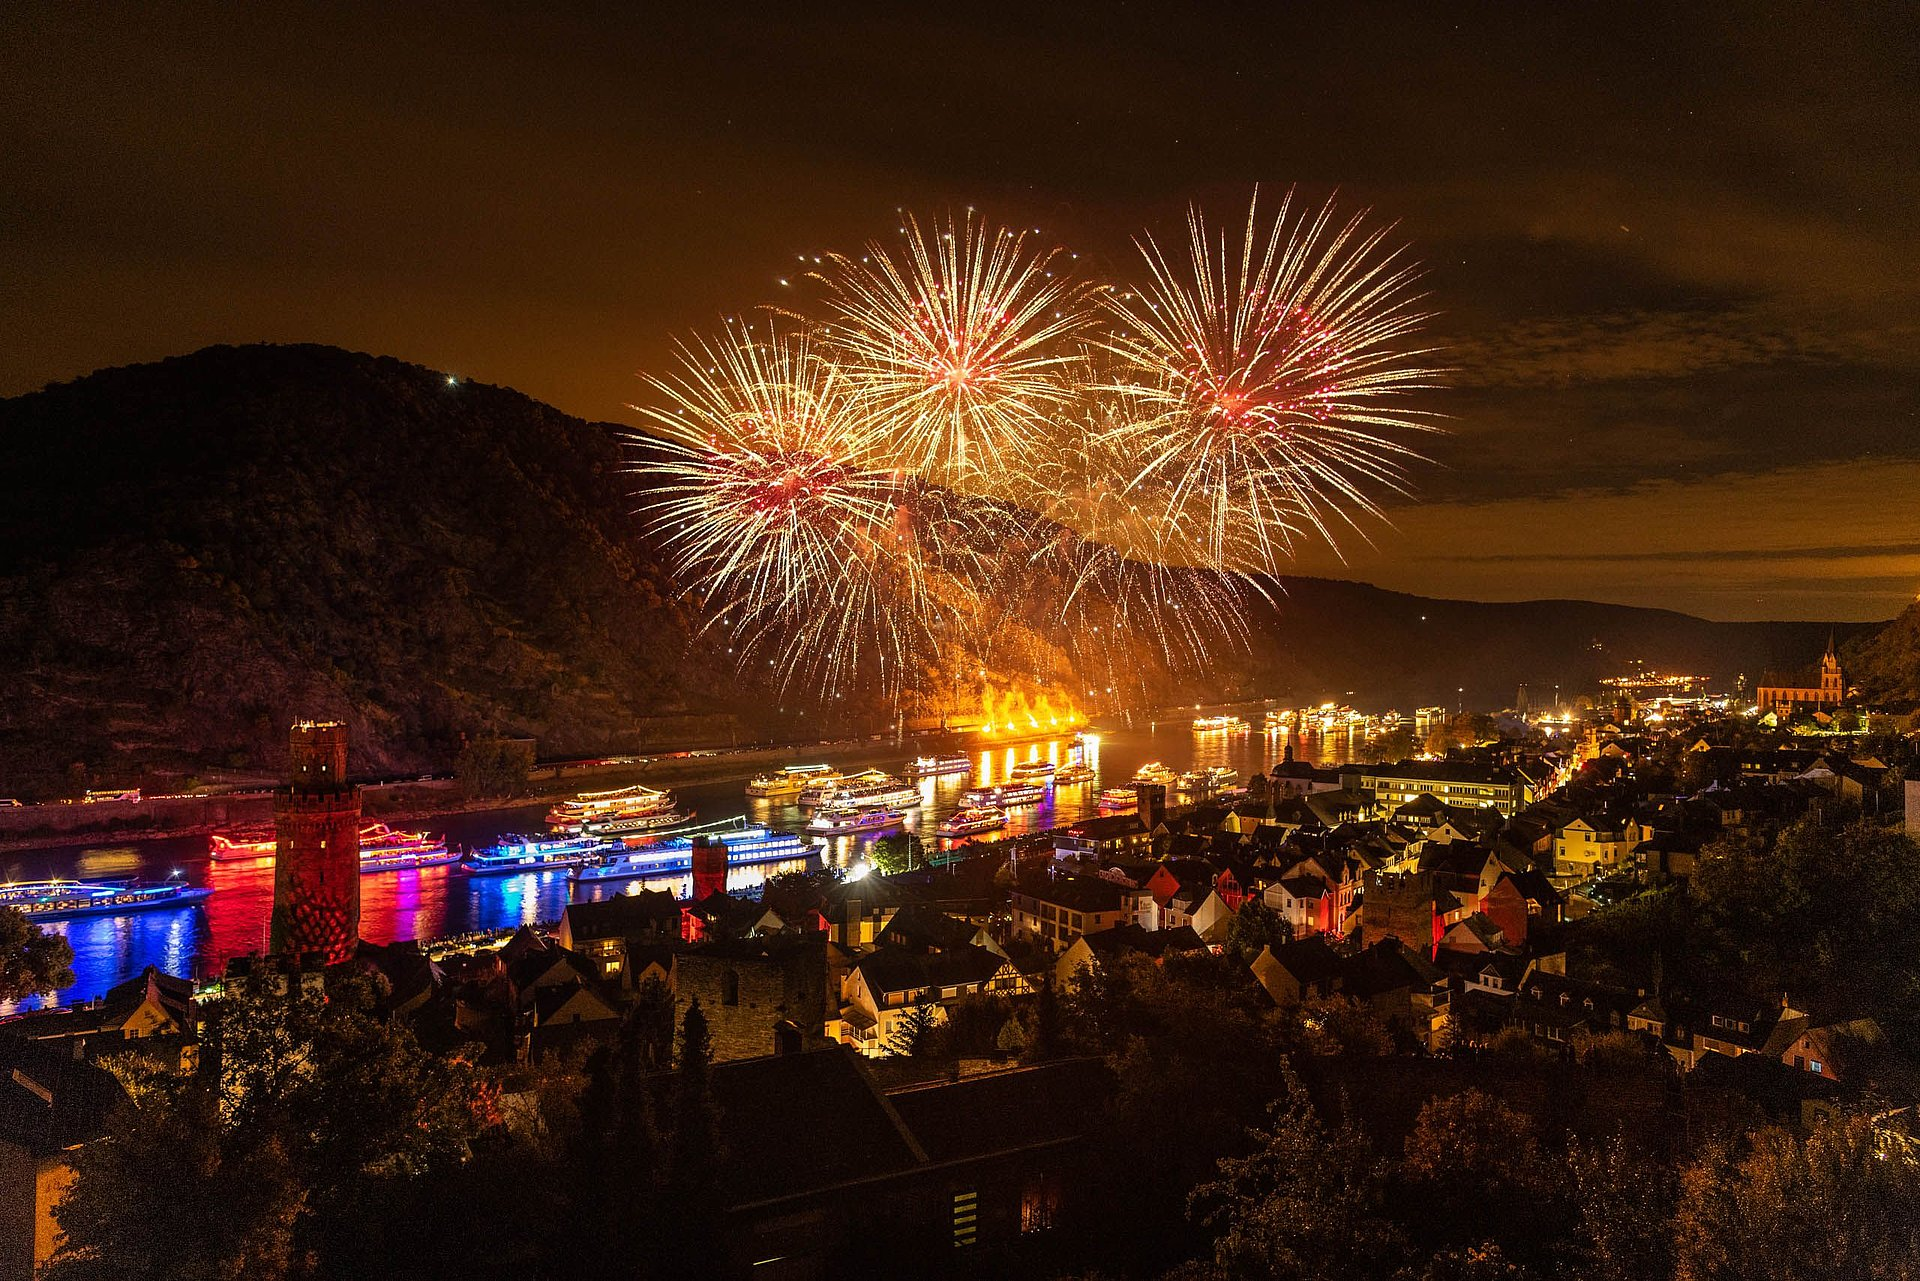 Feu d'artifice à l'occasion du spectacle « Rhein in Flammen » à Oberwesel, Rhin romantique